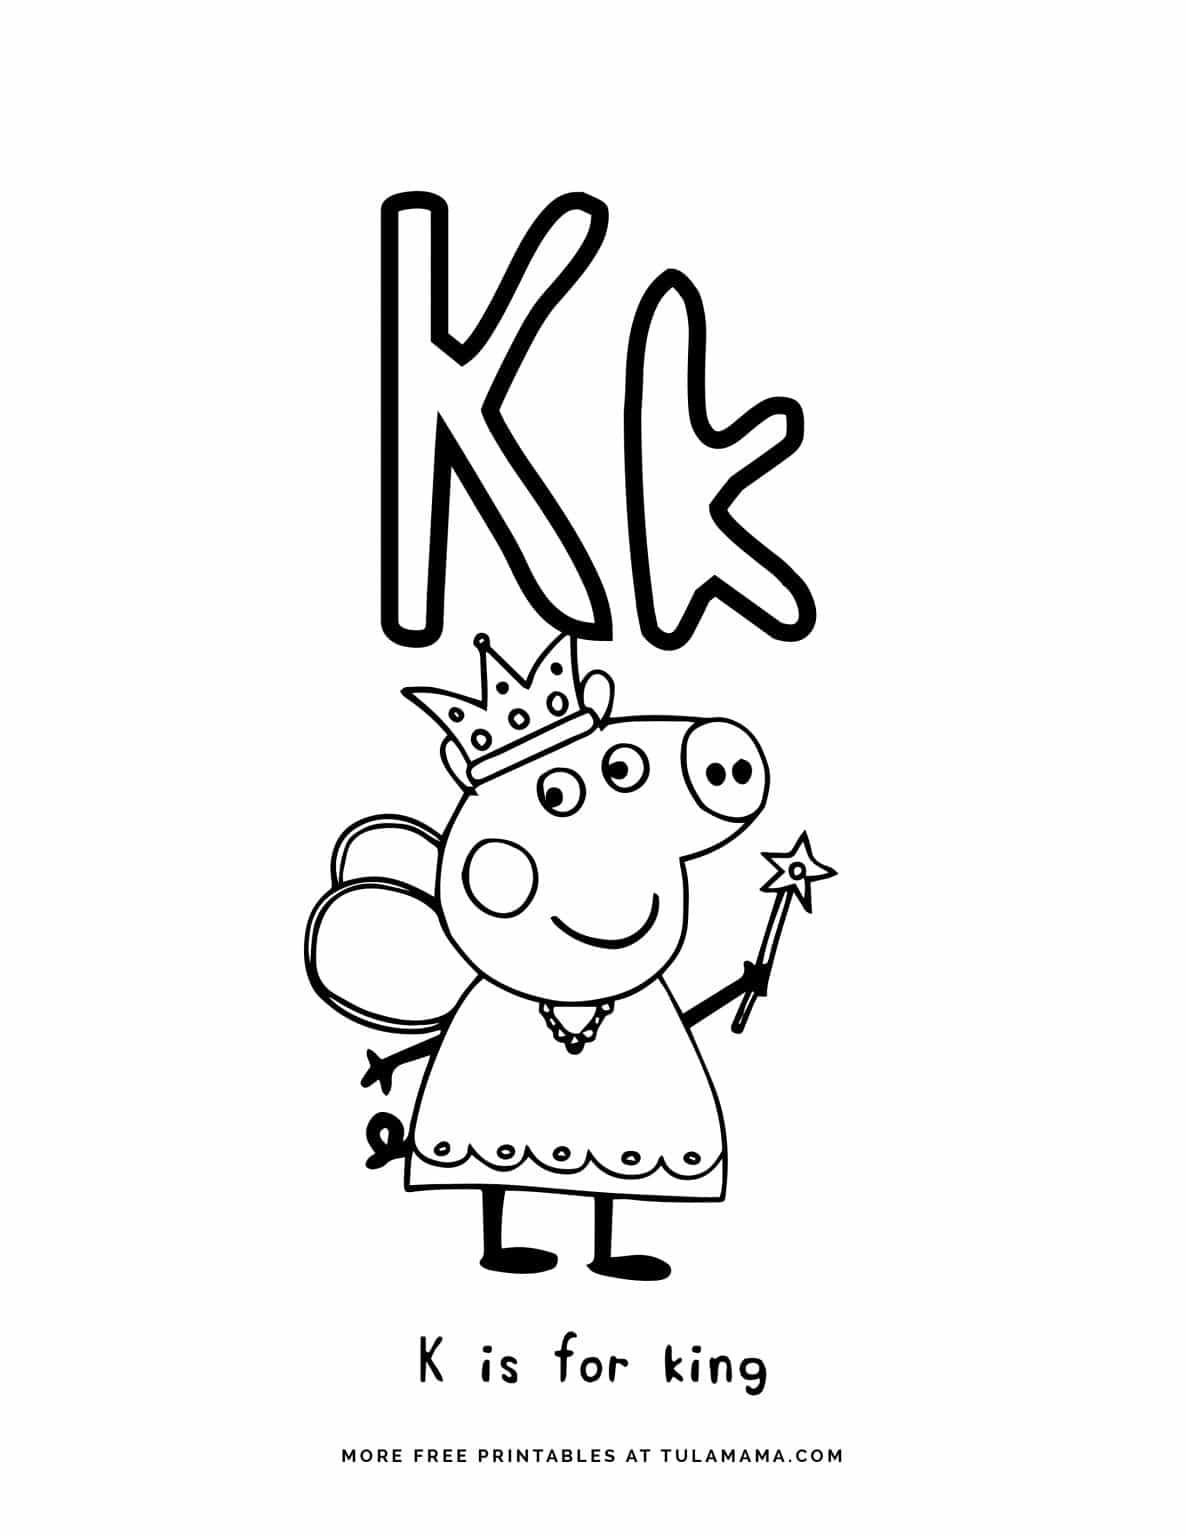 Free Printable Peppa Pig Abc Coloring Pages For Preschoolers Abc Coloring Pages Abc Coloring Abc Printables [ 1536 x 1187 Pixel ]